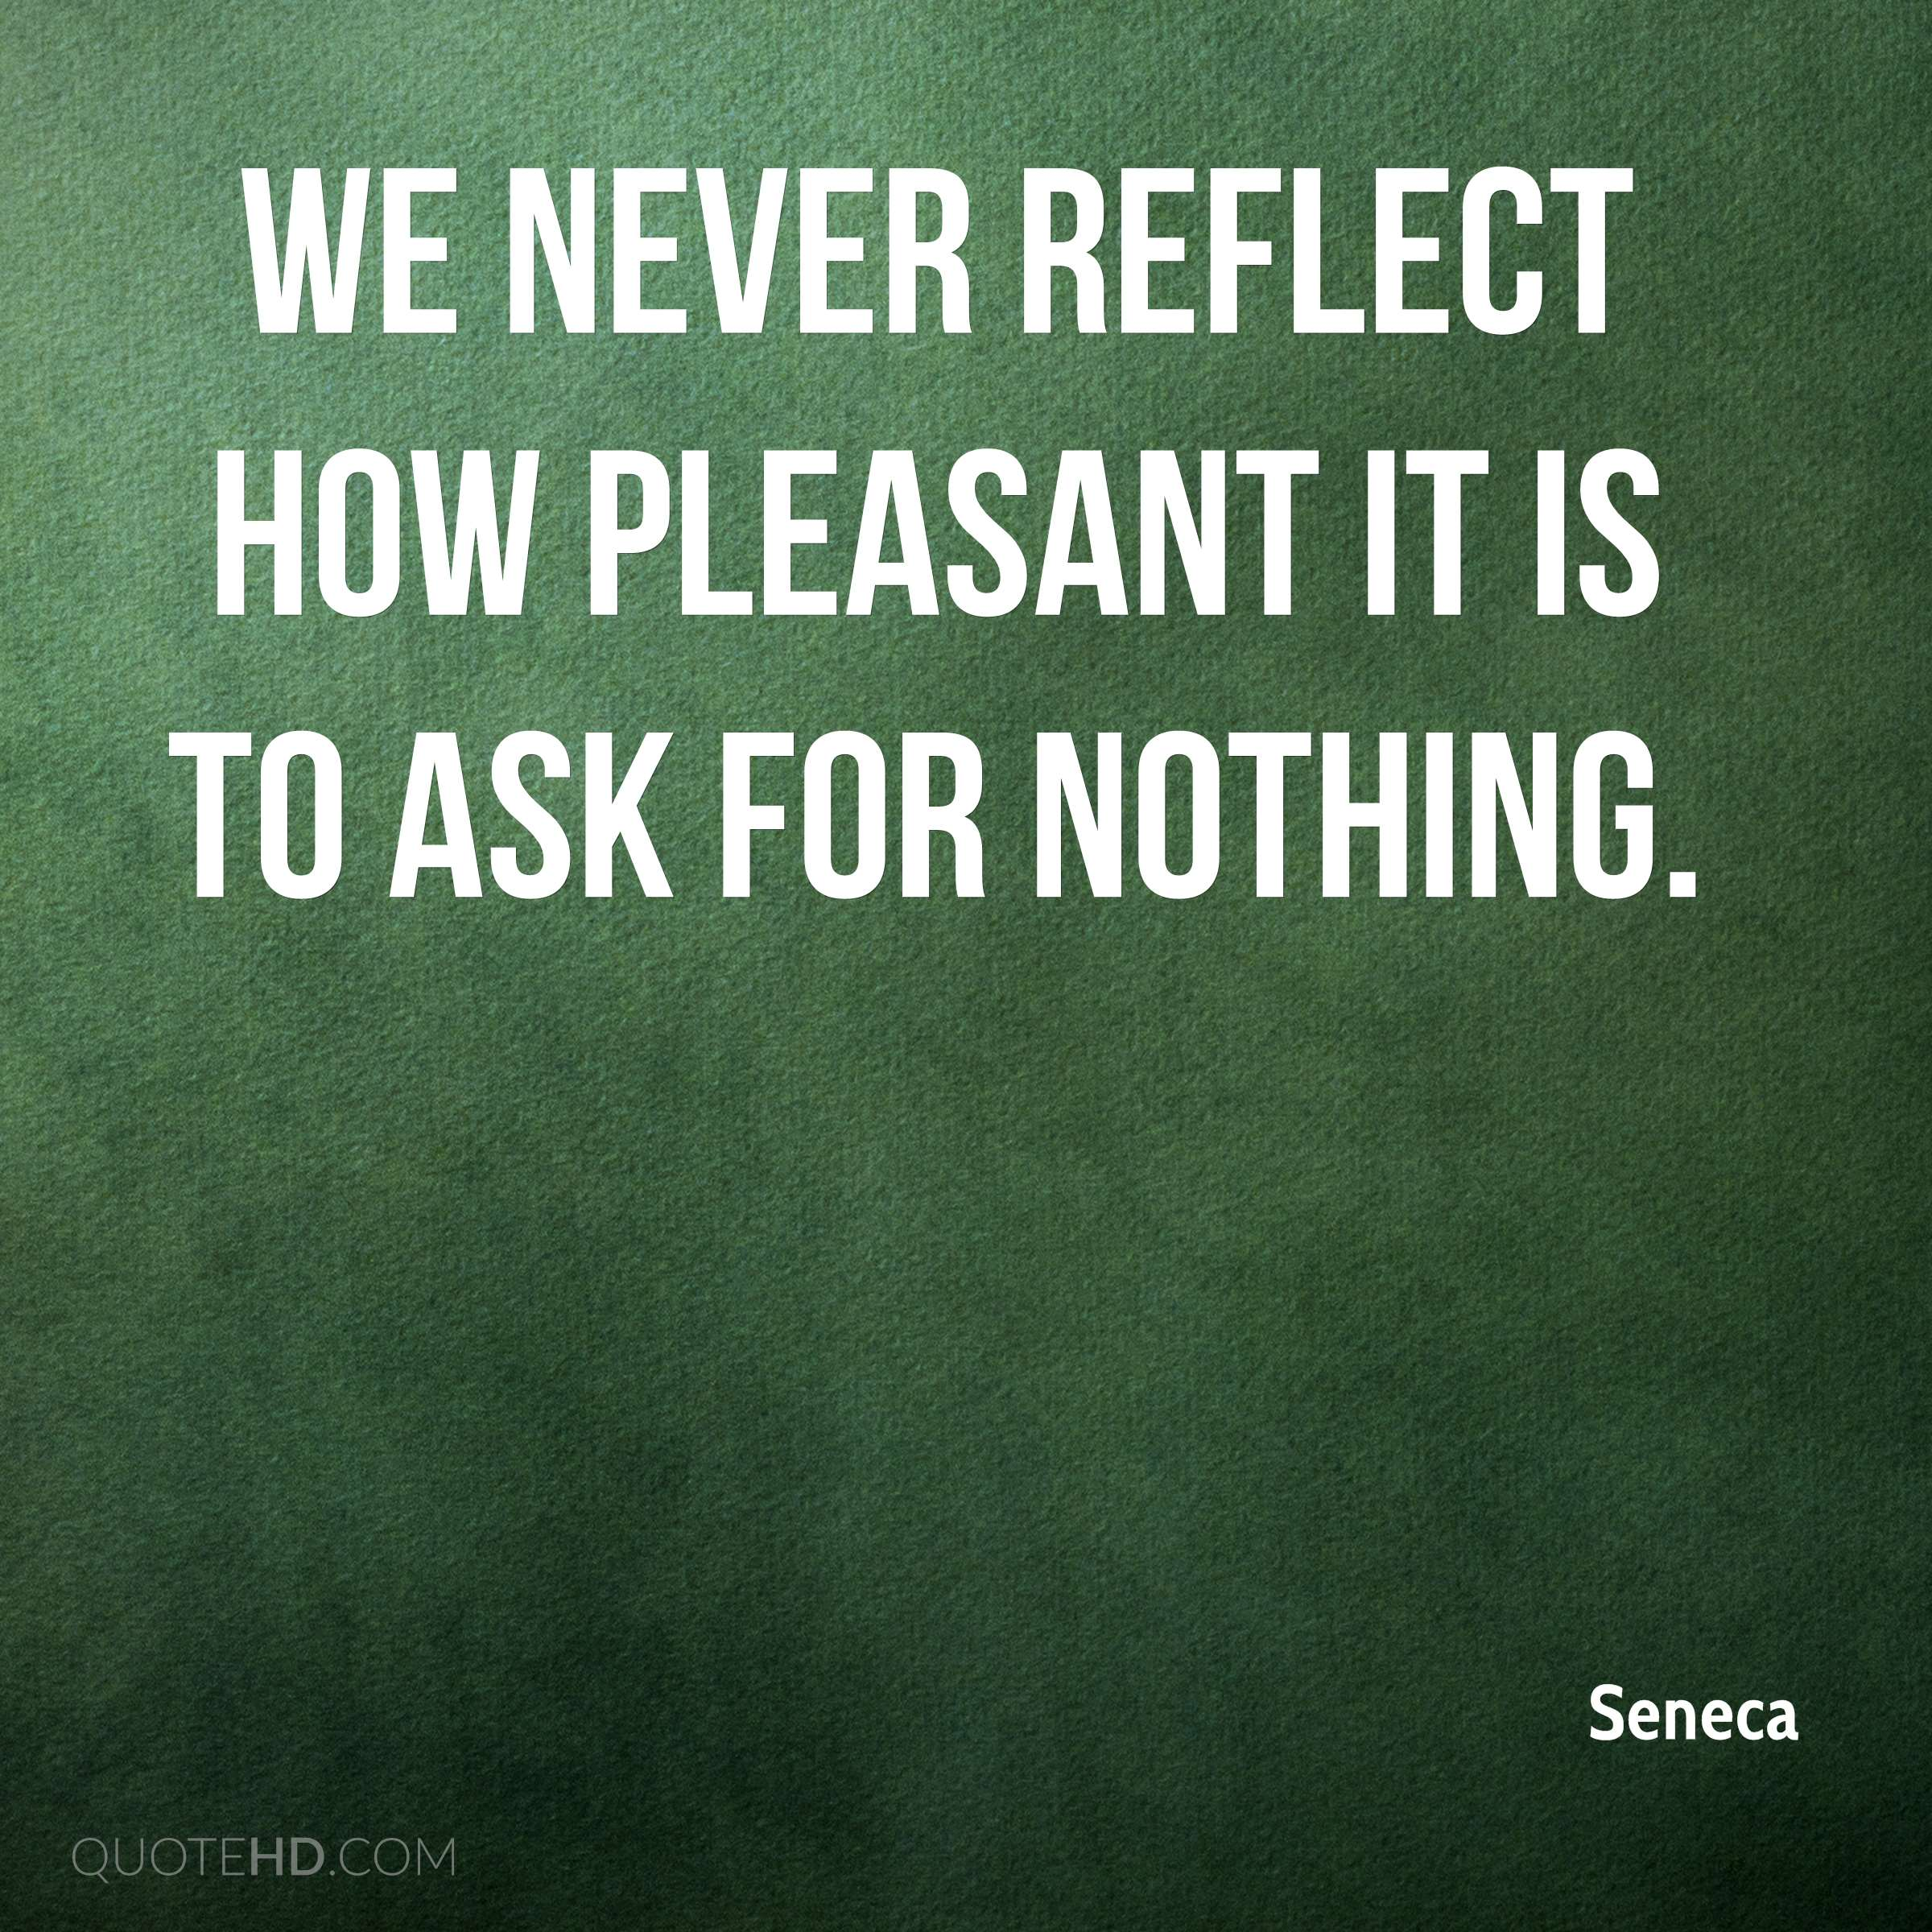 We never reflect how pleasant it is to ask for nothing.